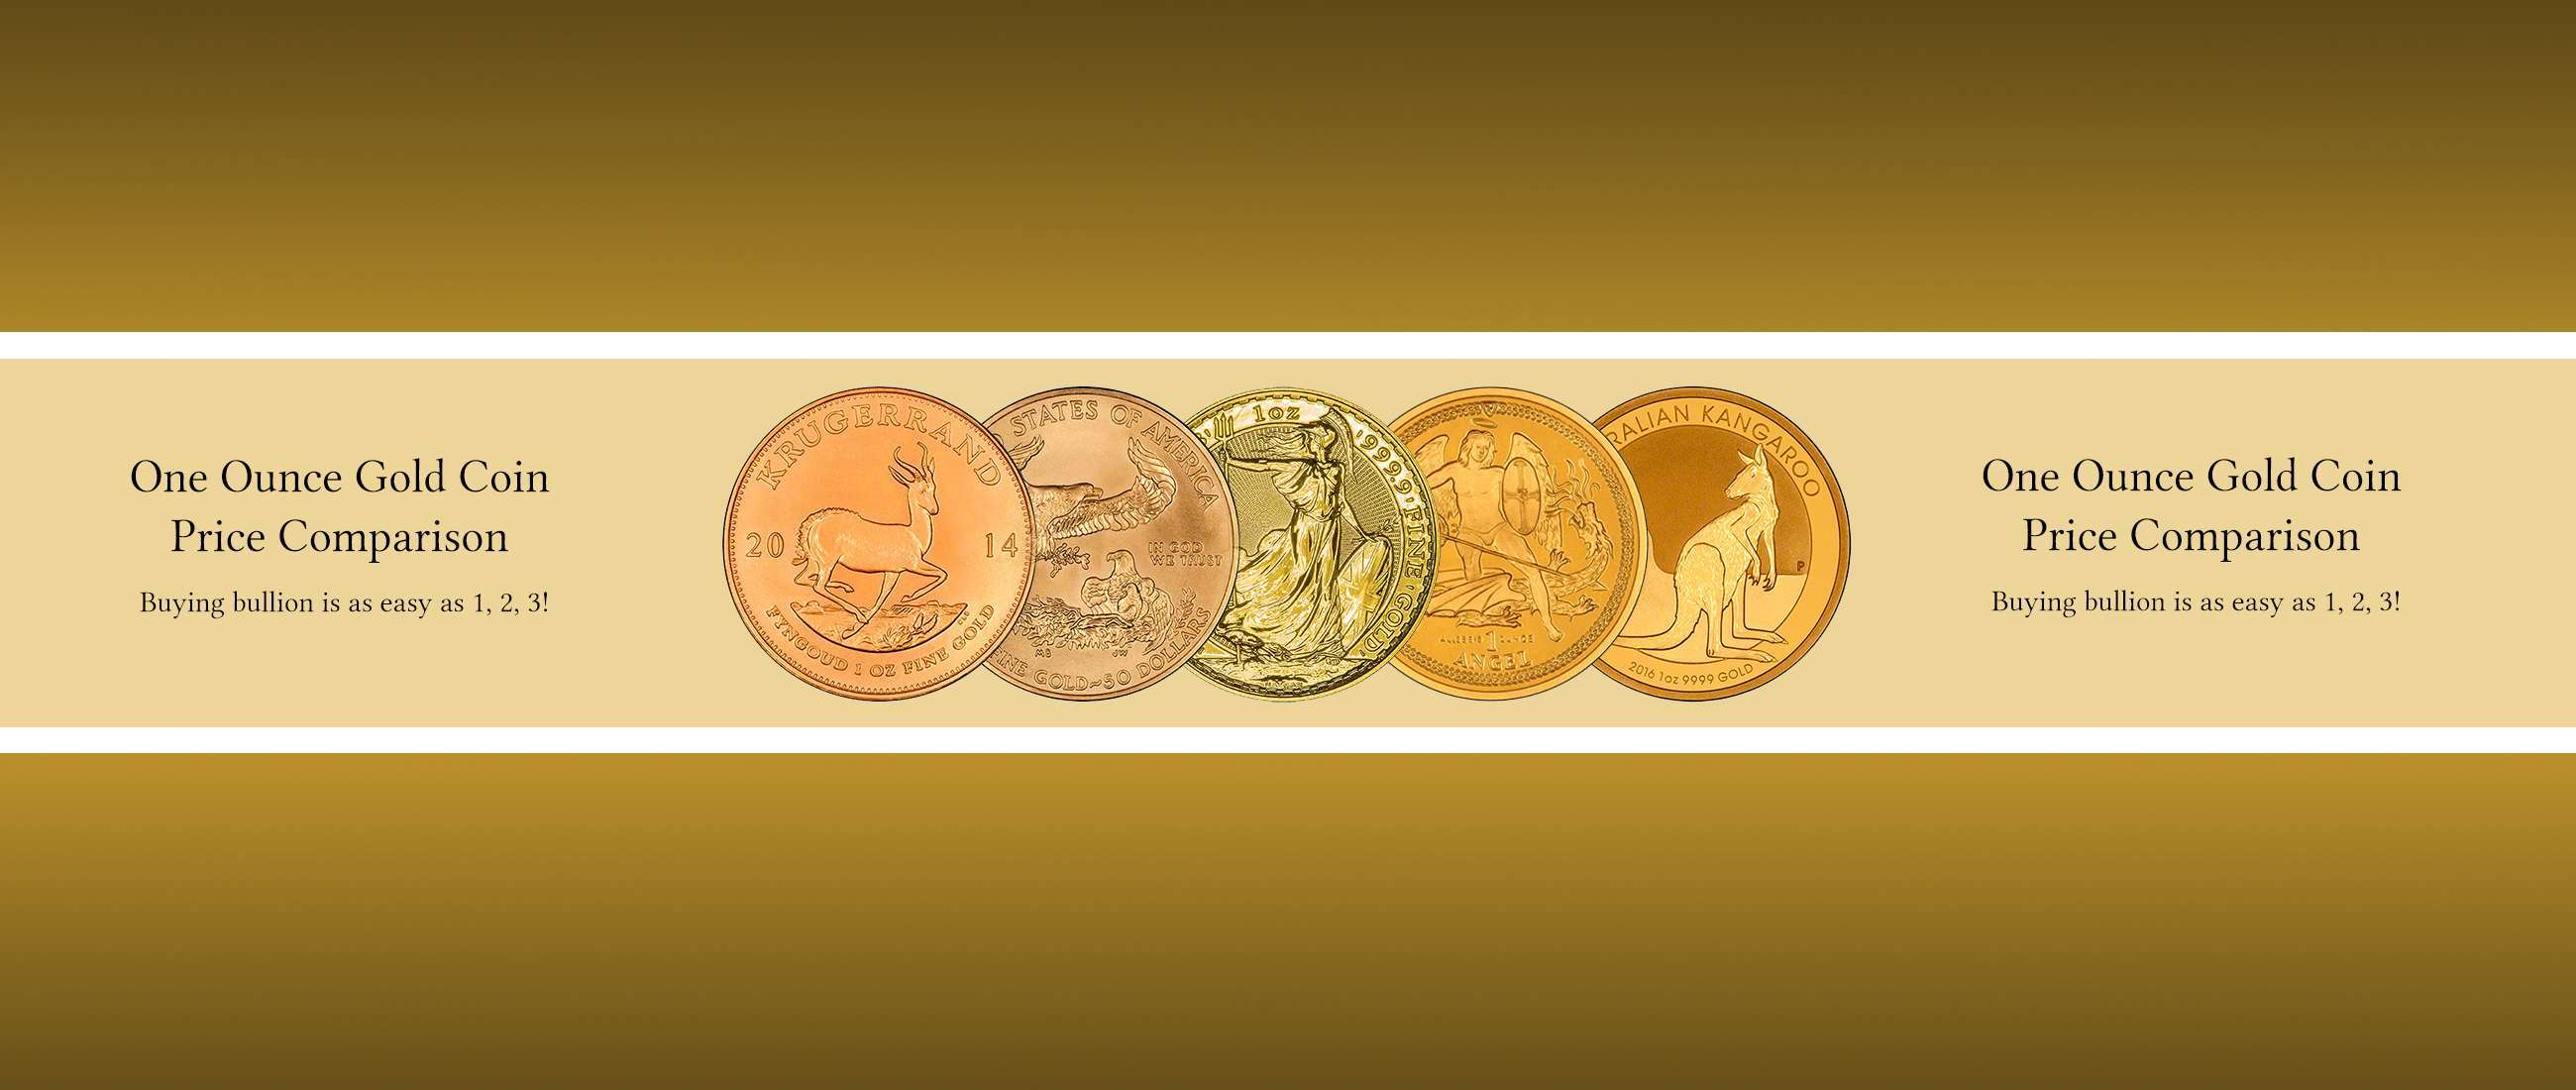 Which One Ounce Gold Coin - A Price Comparison 240